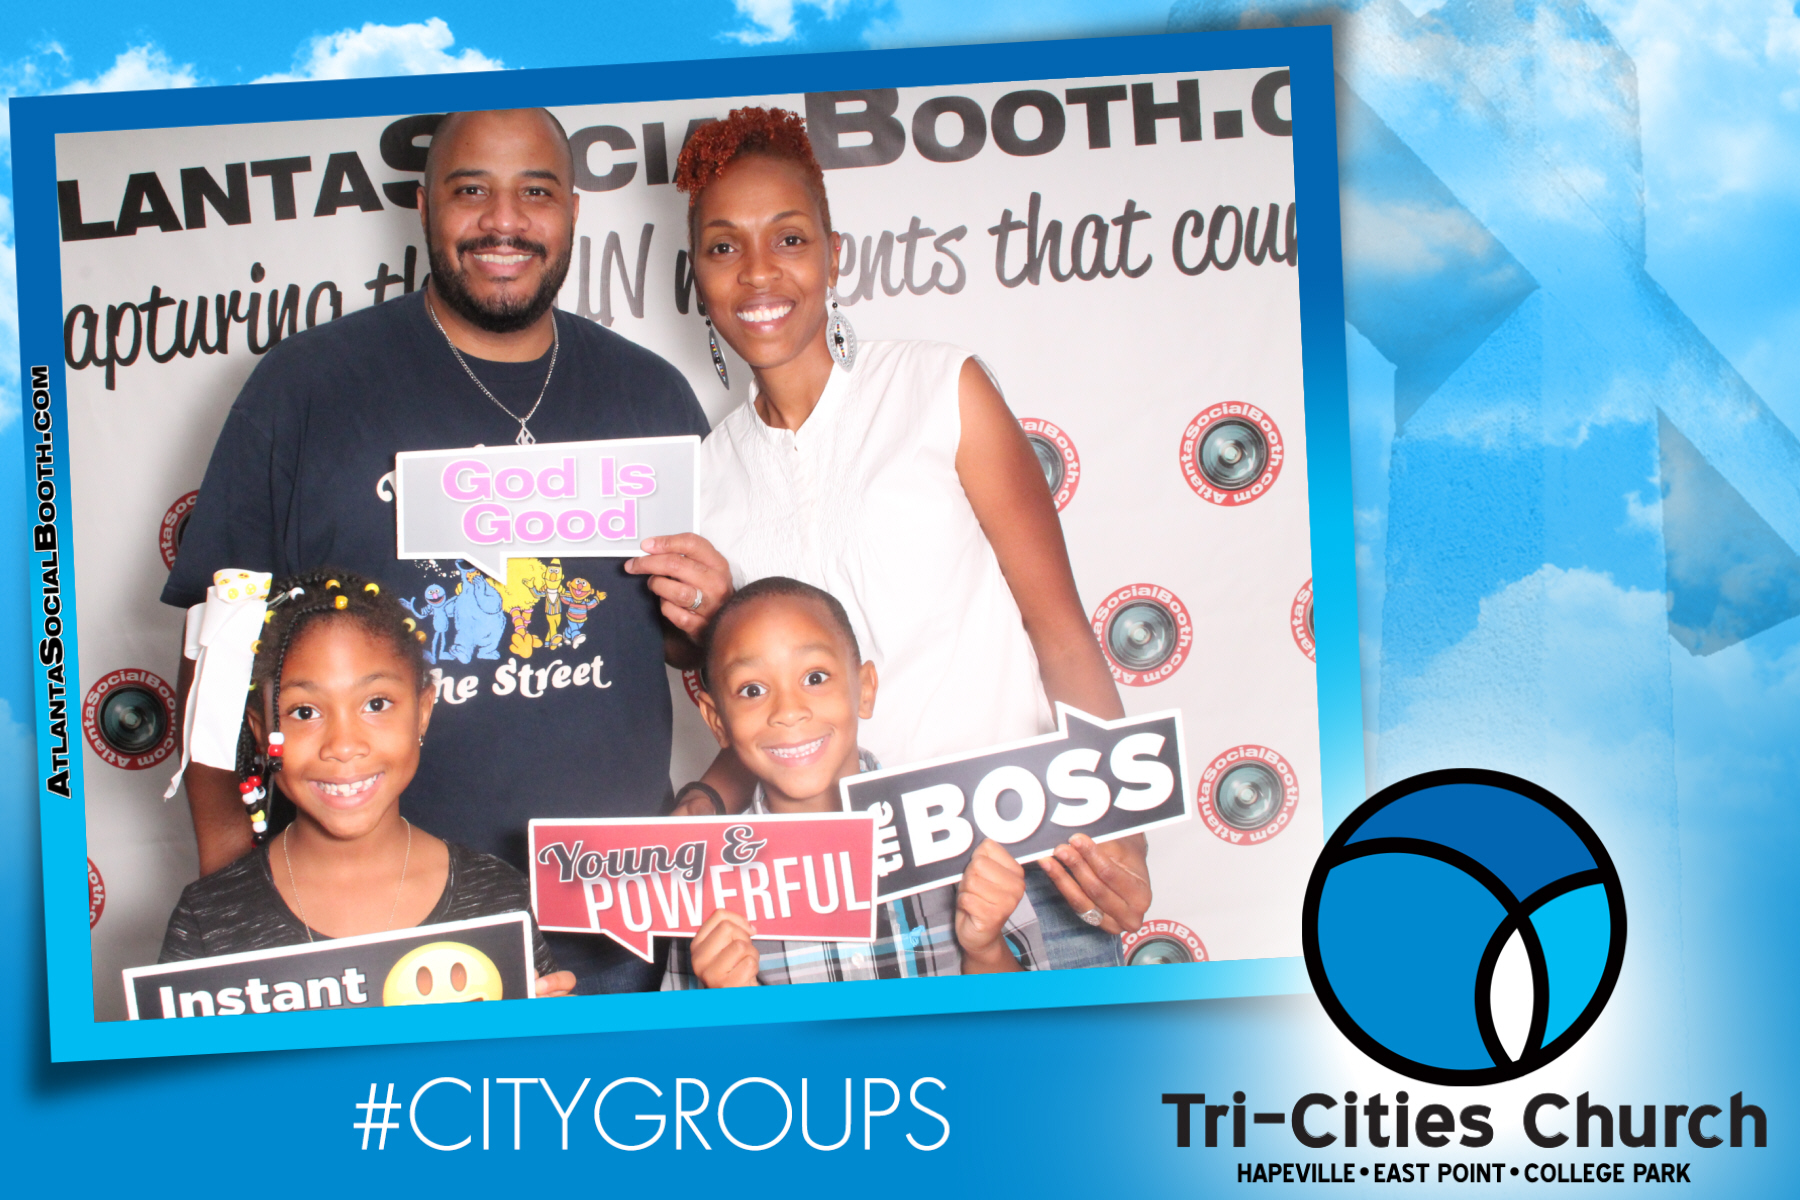 Tri-Cities Church #CityGroups